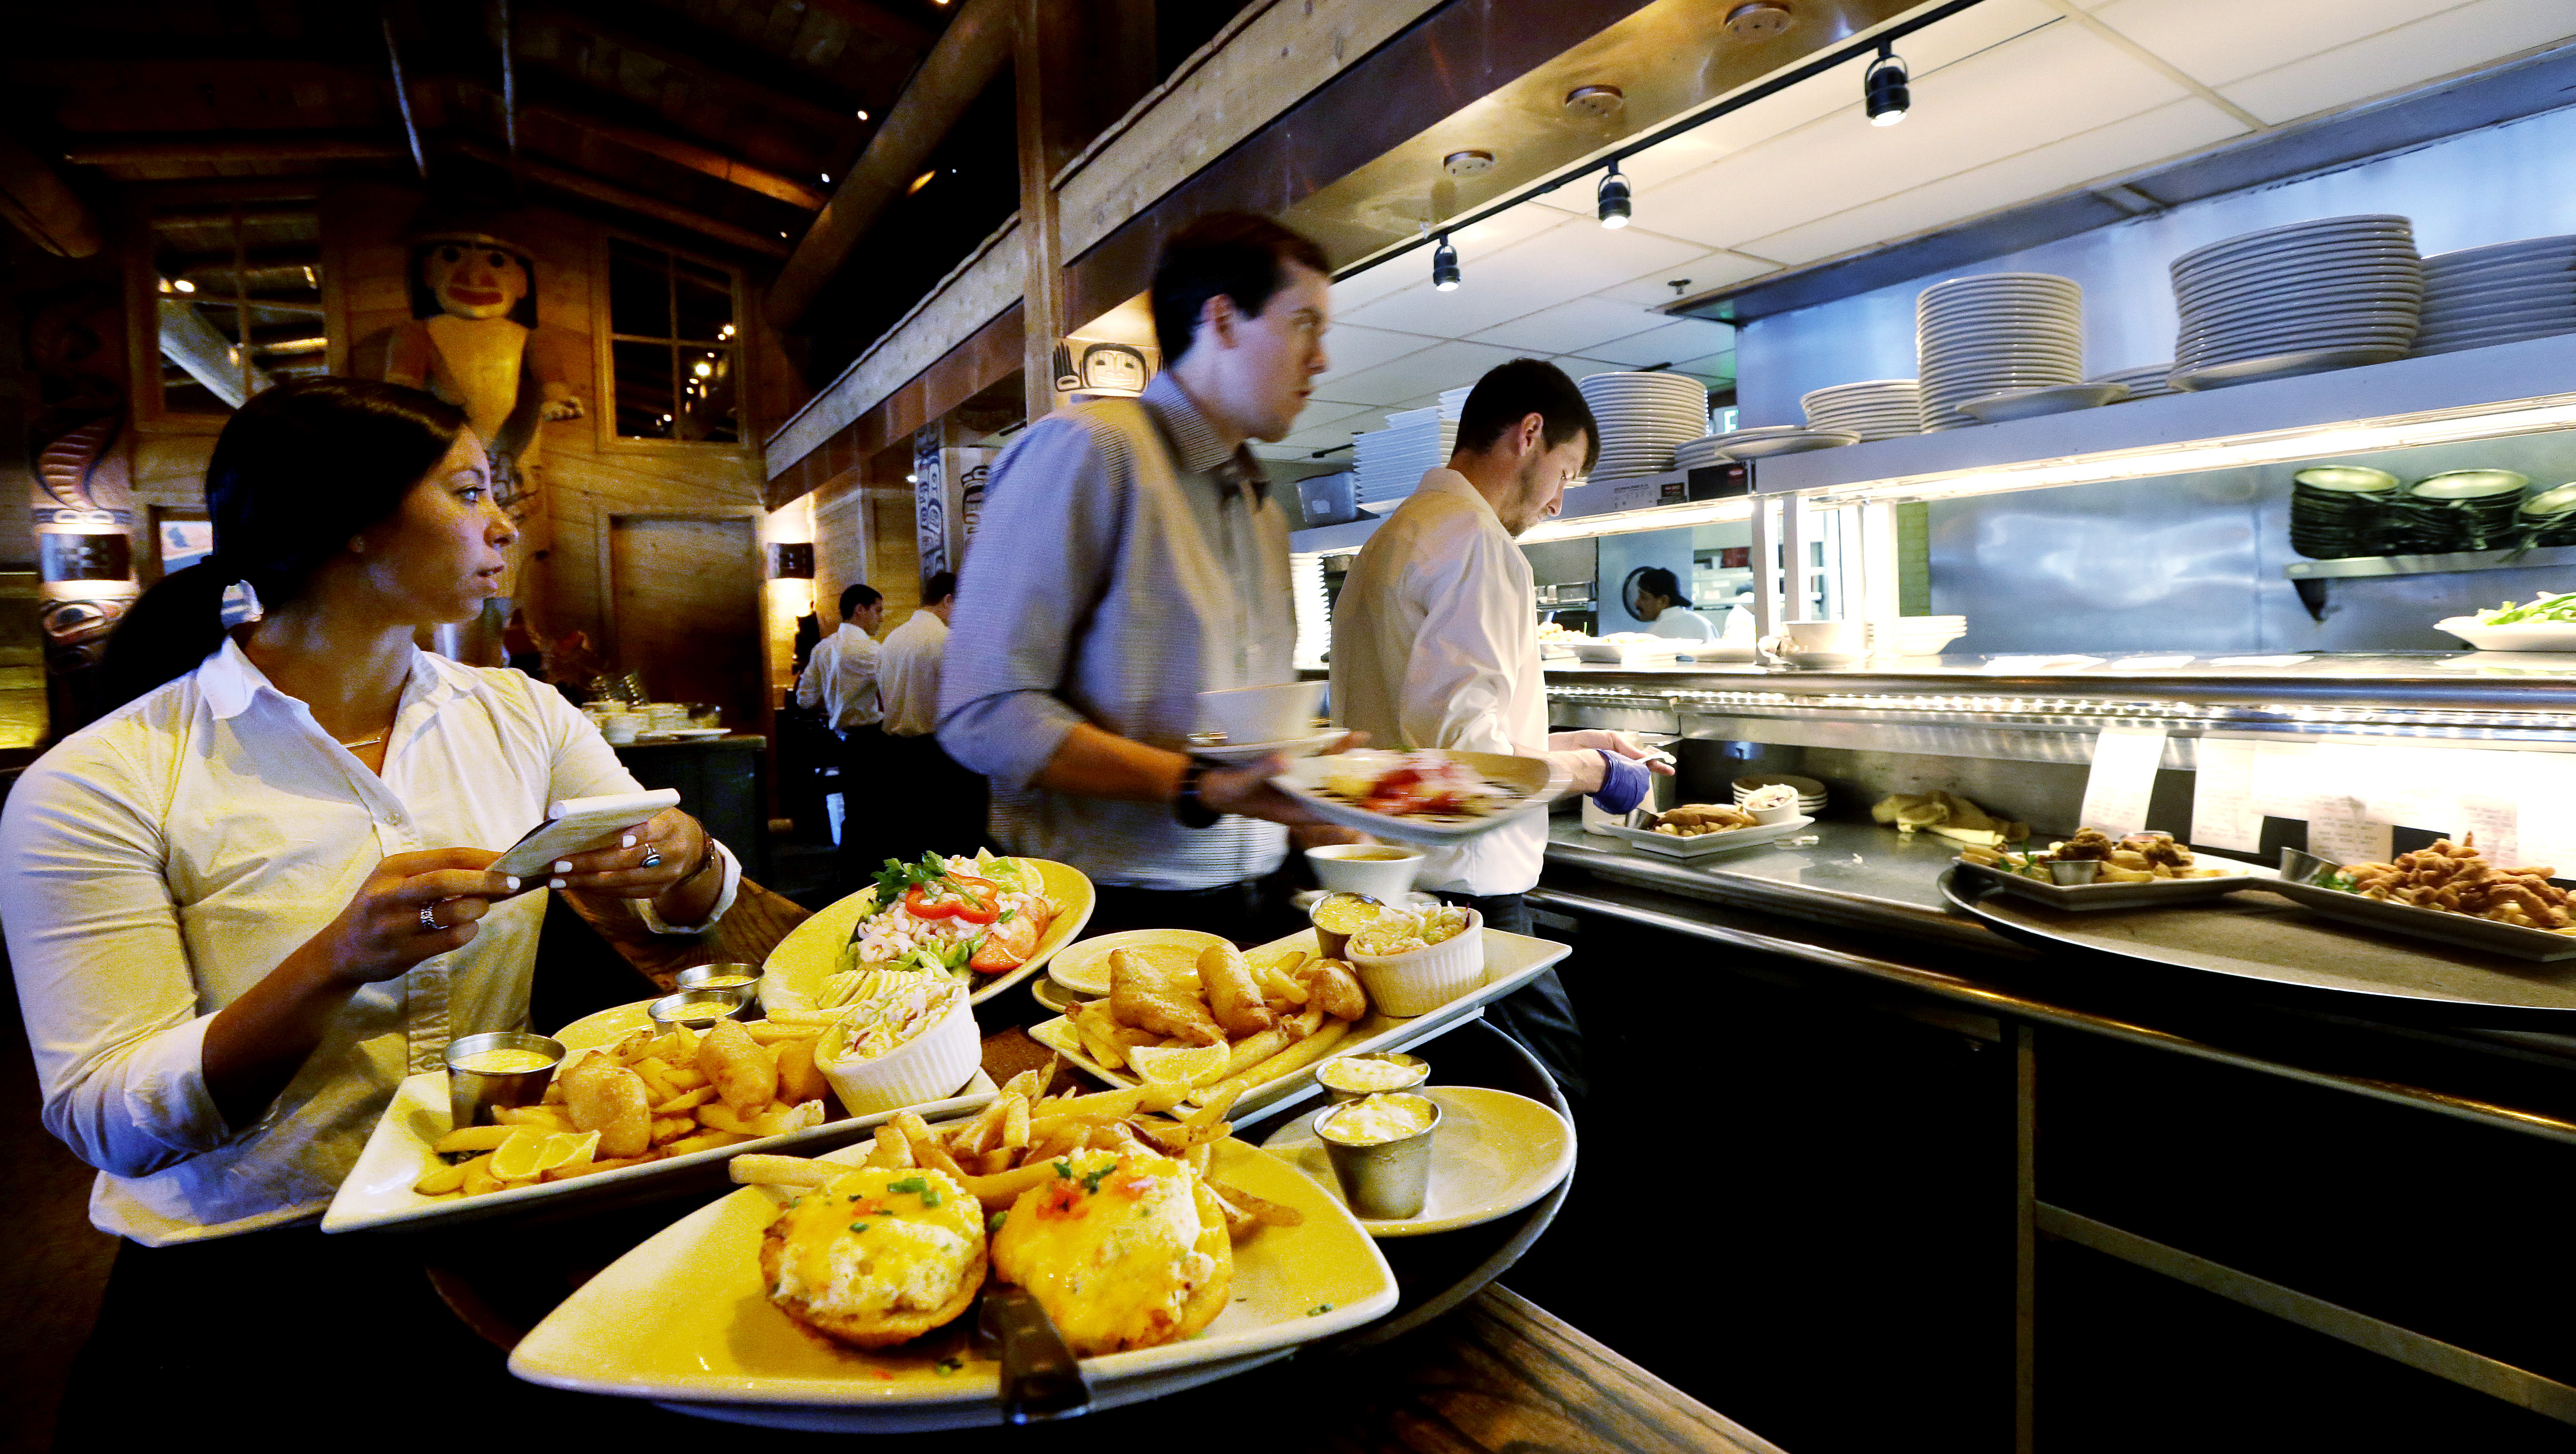 D.C.'s Restaurant Week extended due to snow